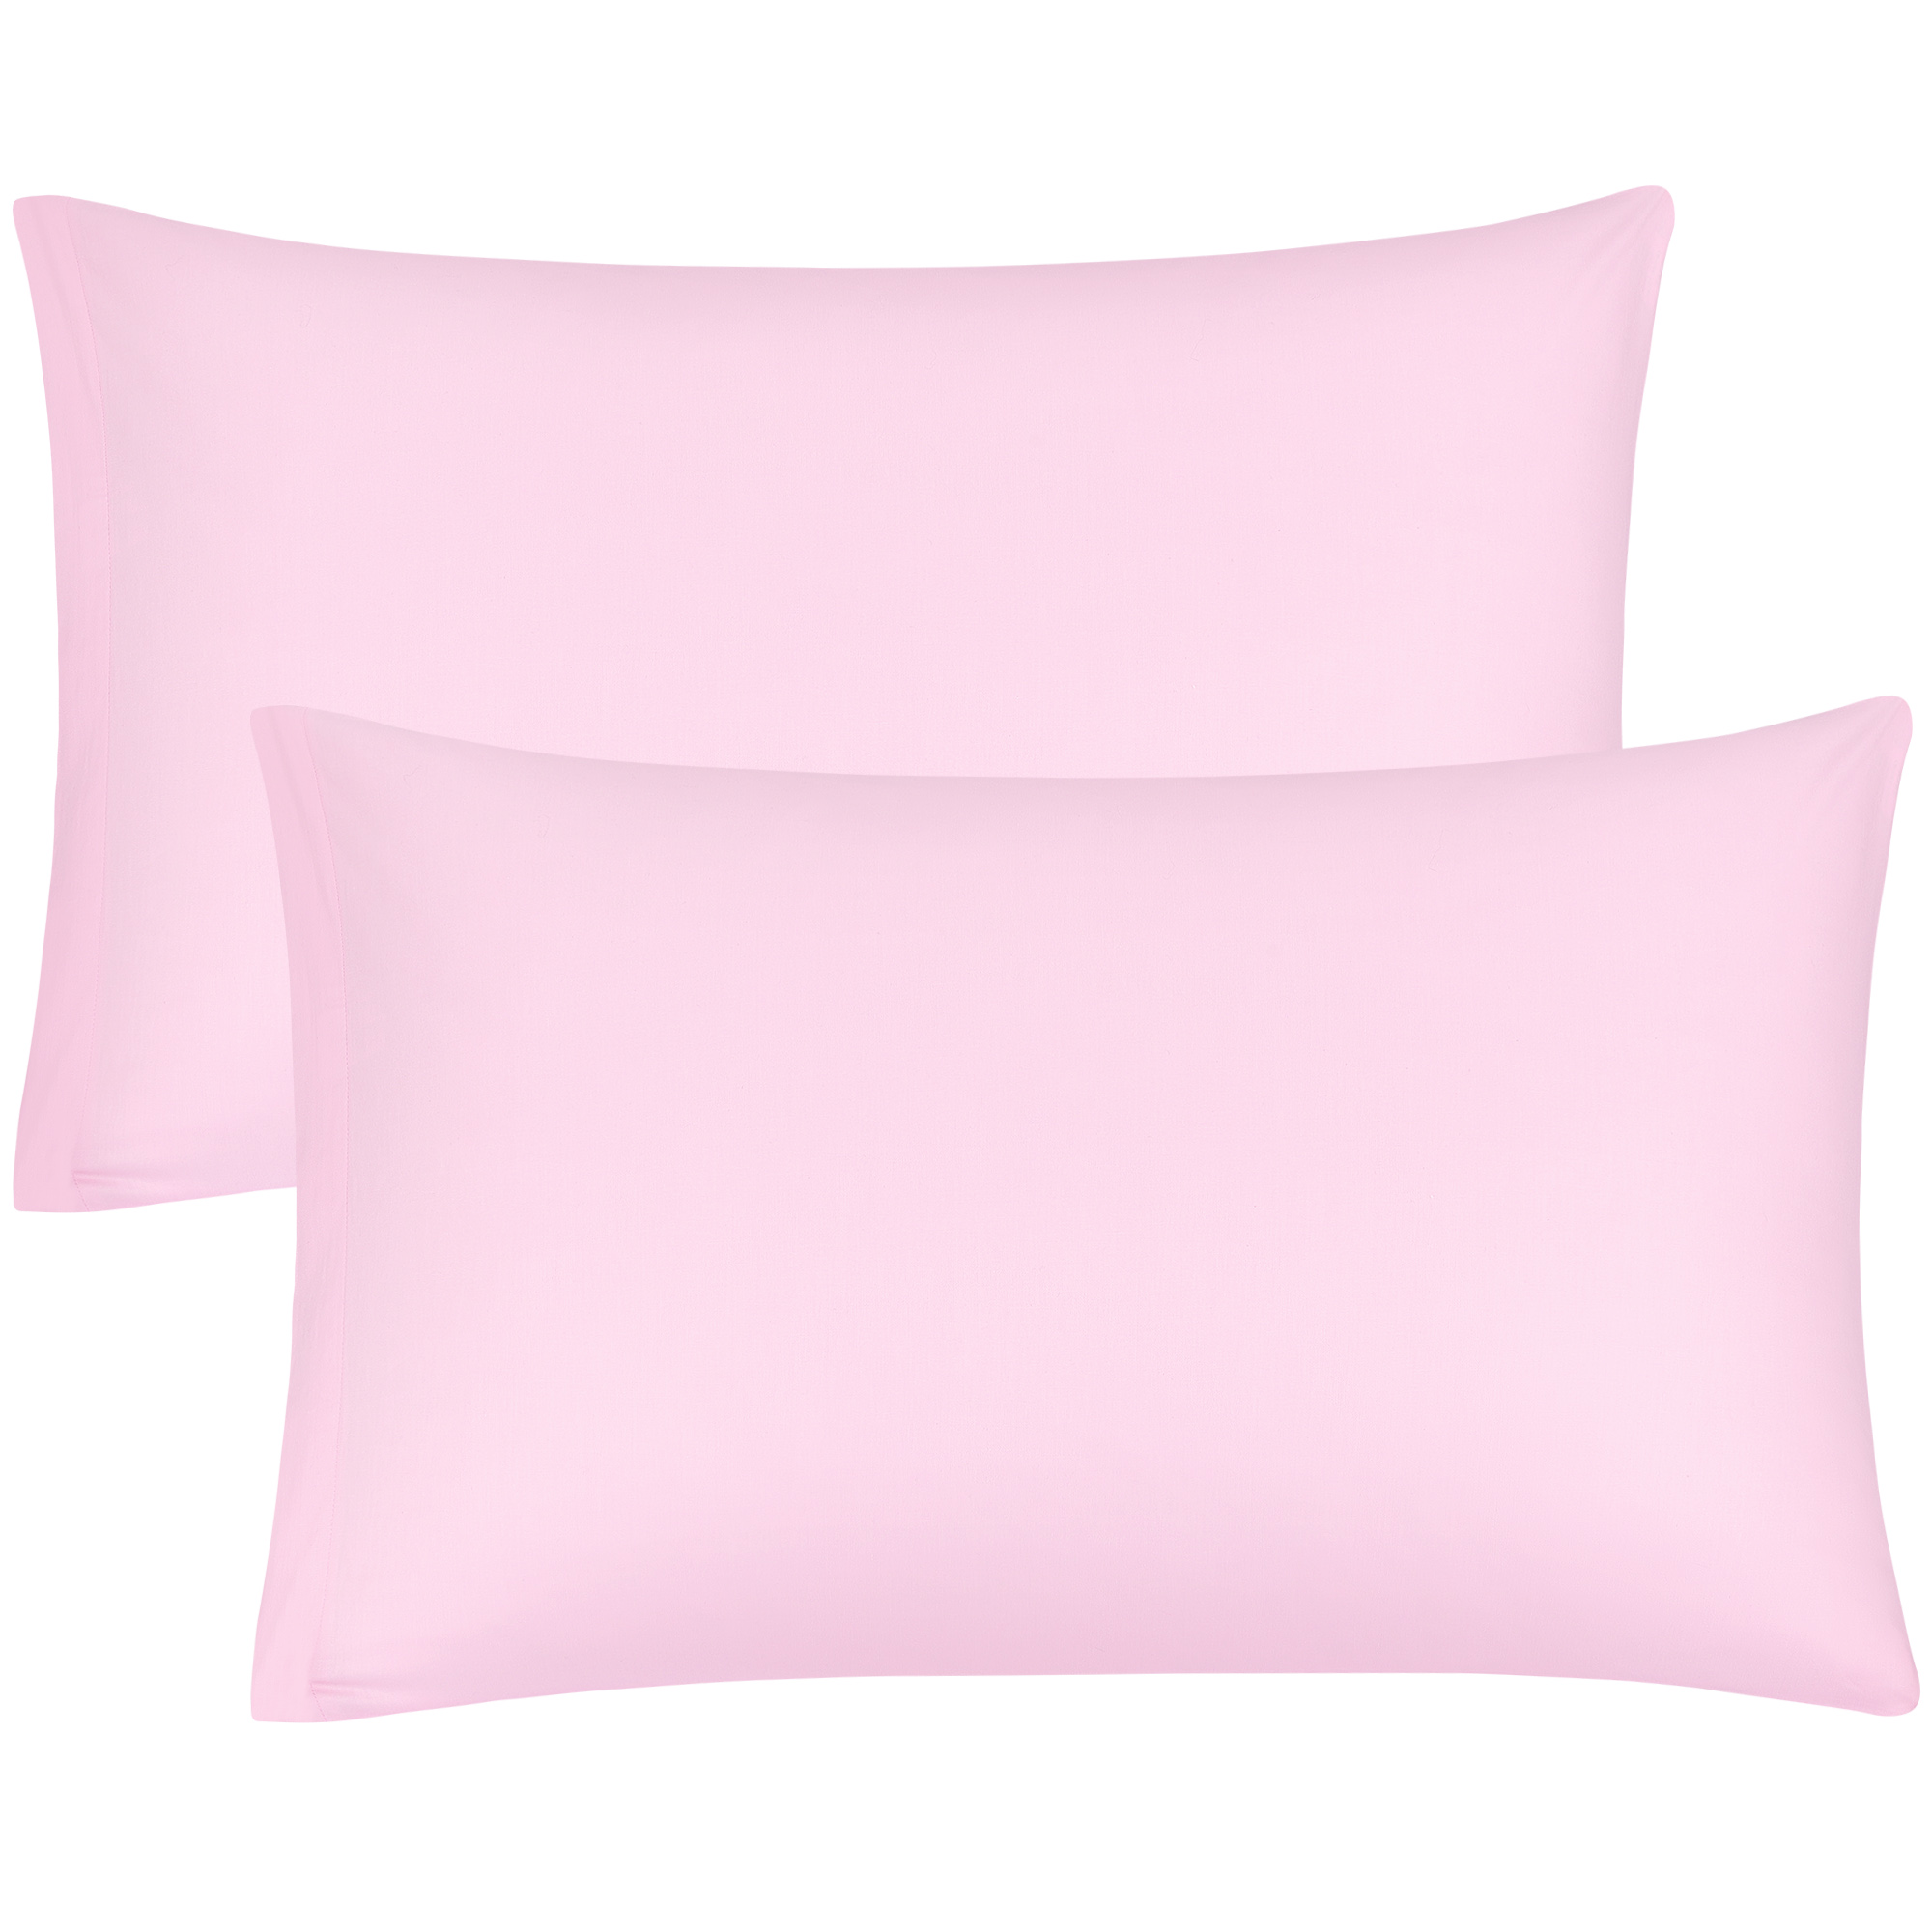 Zippered Cases Pillowcases Covers Egyptian Cotton 2-Pack (20 x 30 Inch, Pink)